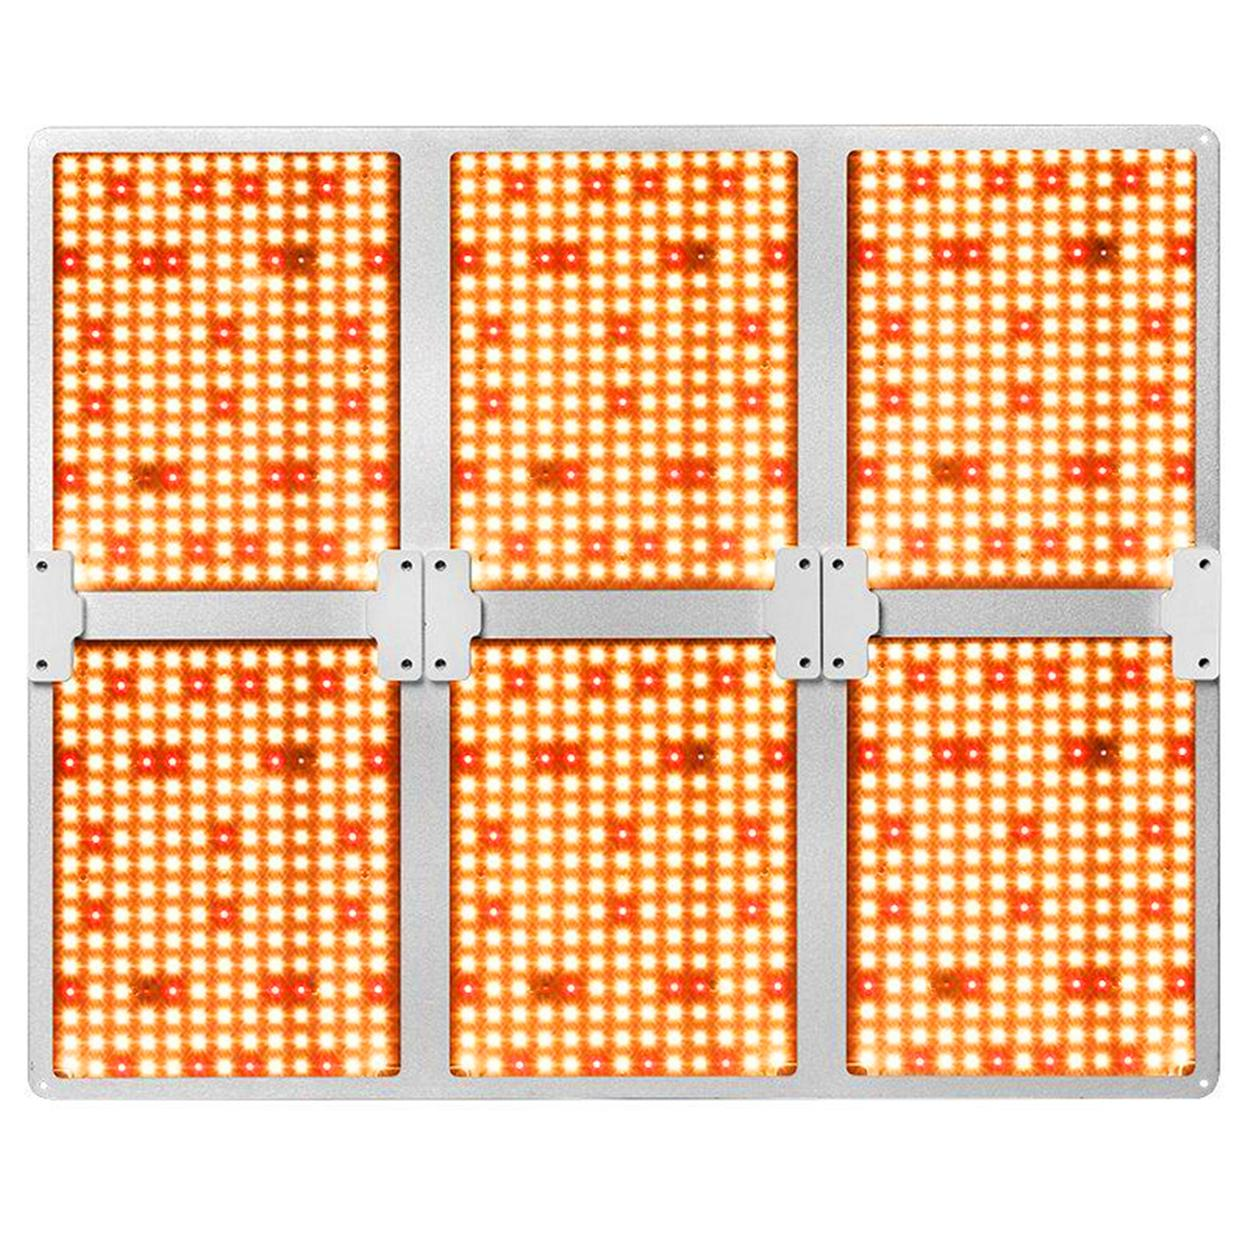 Full Spectrum Samsung 281B LED Grow Light 1000W 2000W 4000W 6000W 3000k+5000k+660nm Dimmable Plant Grow Lamp Led with Dimmer Driver